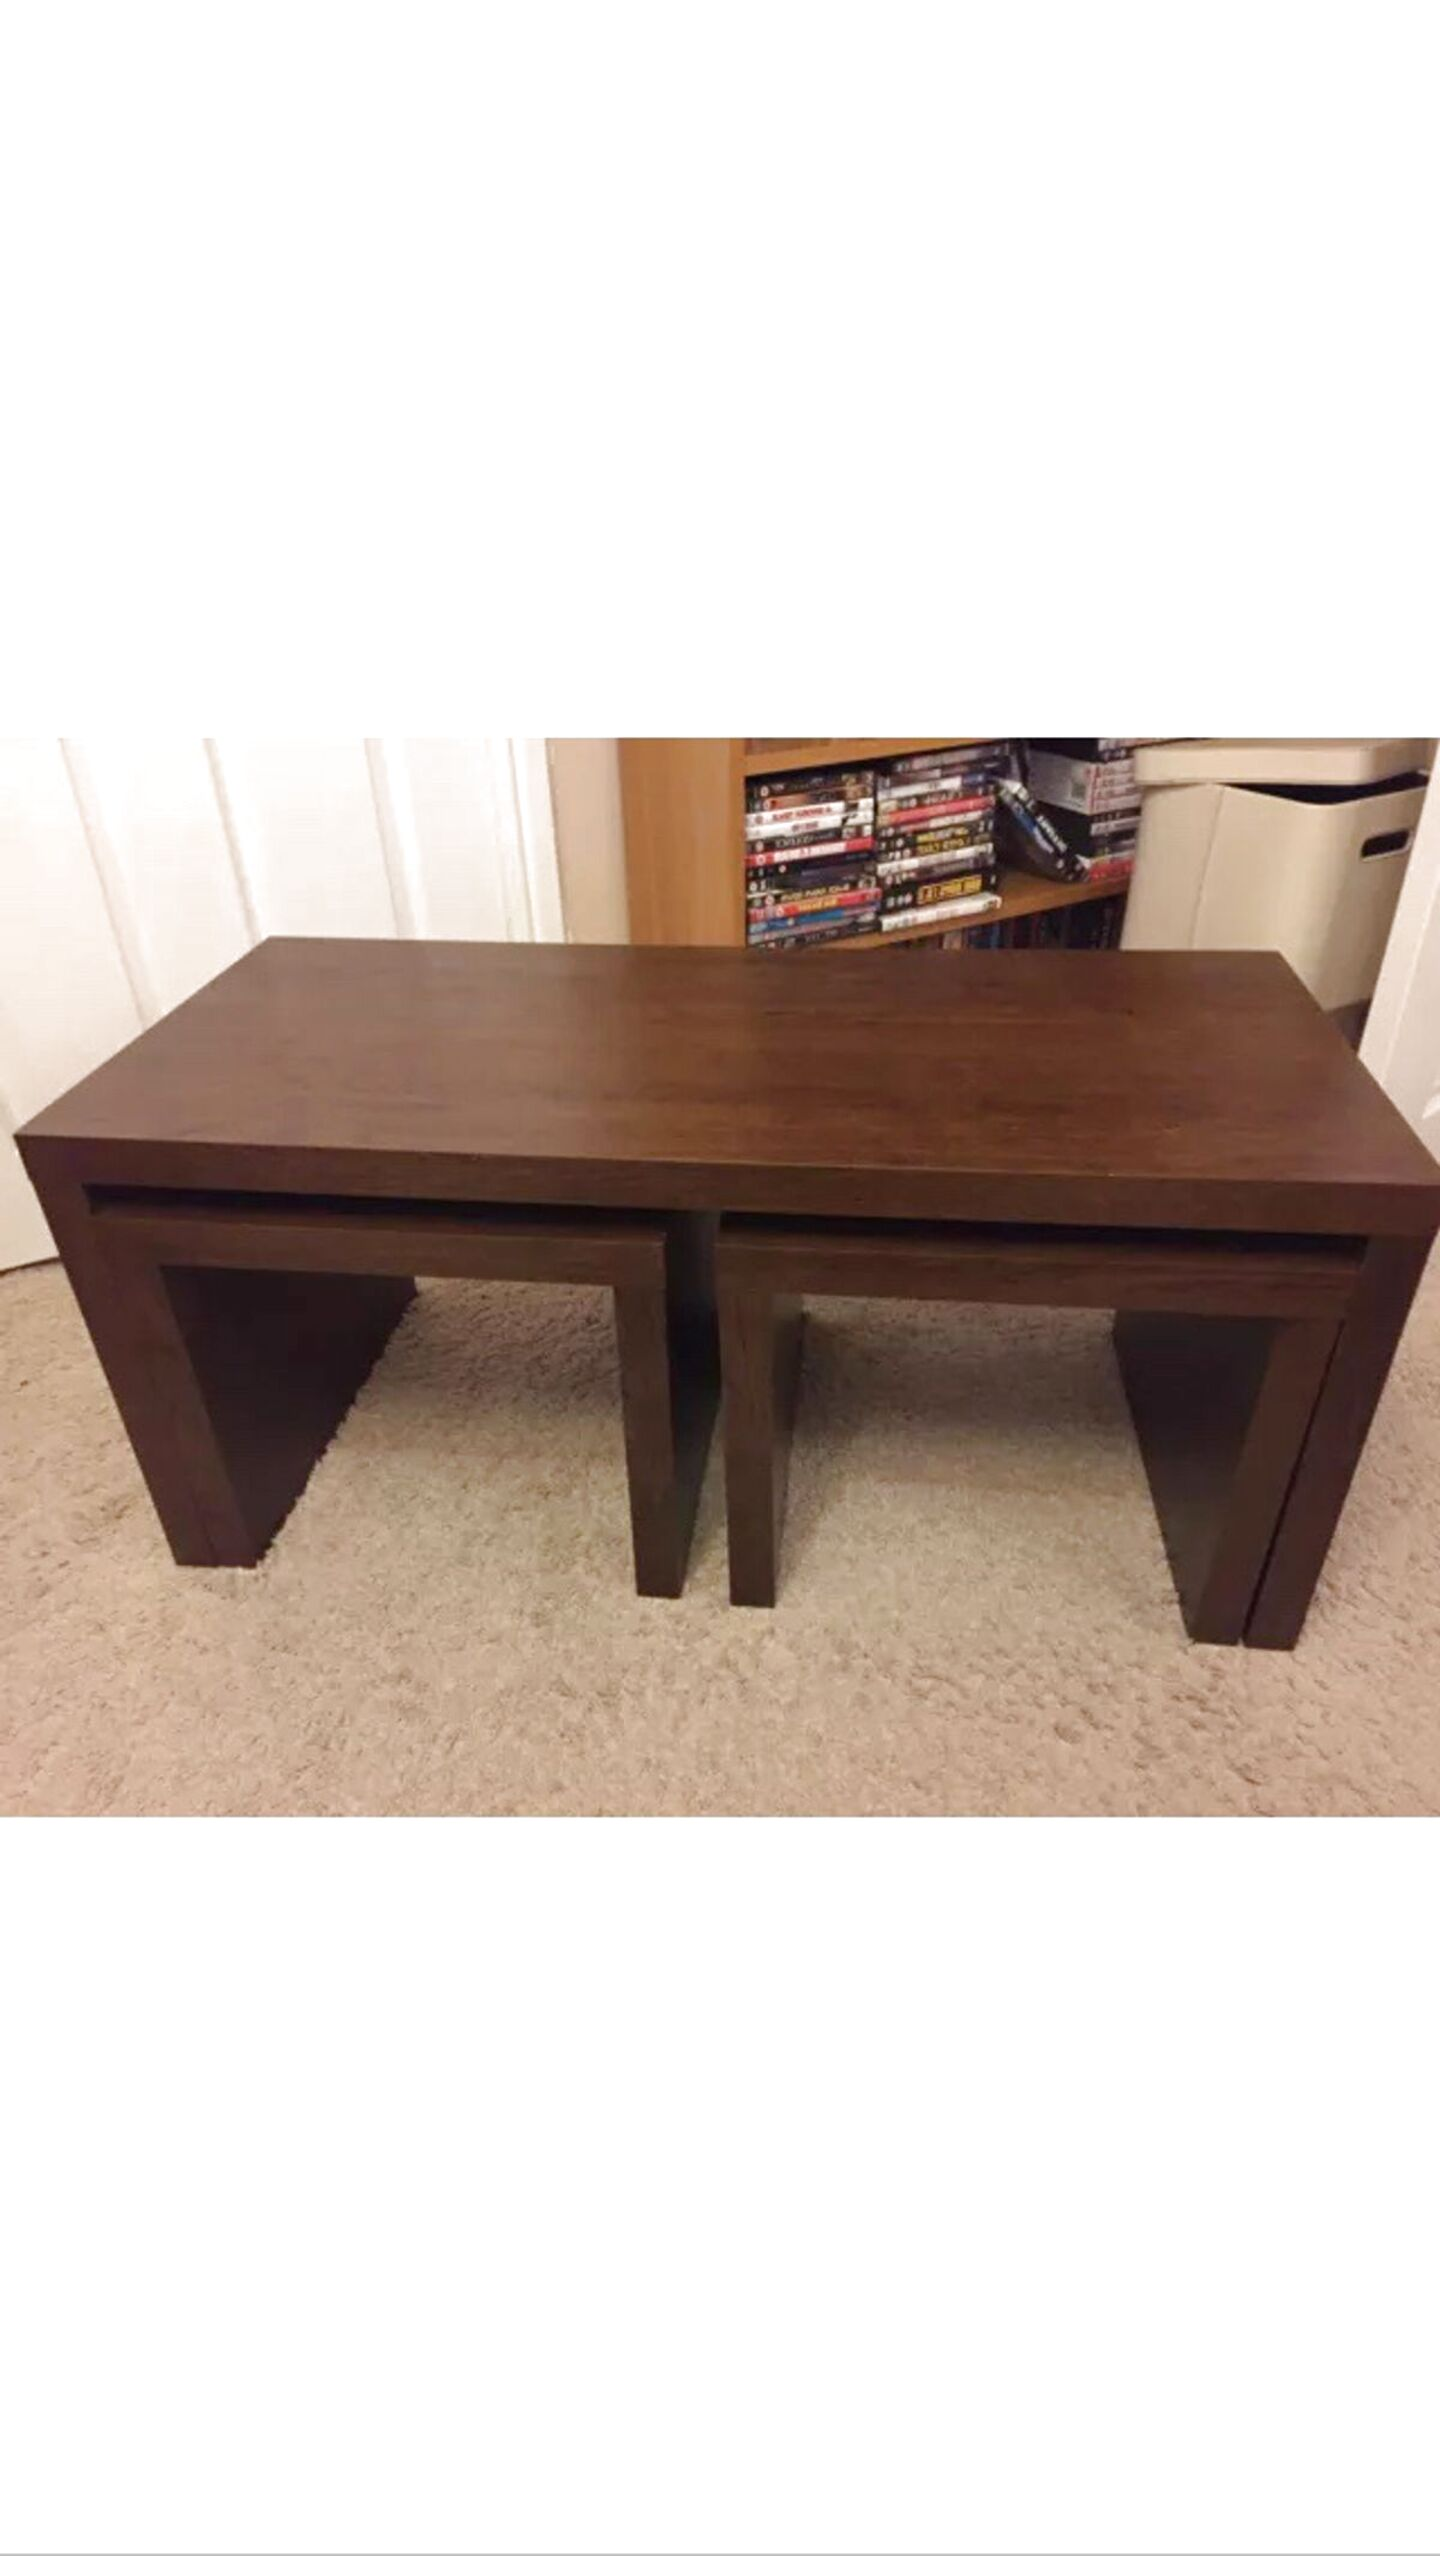 Next Mango Furniture For Sale In Uk View 32 Bargains